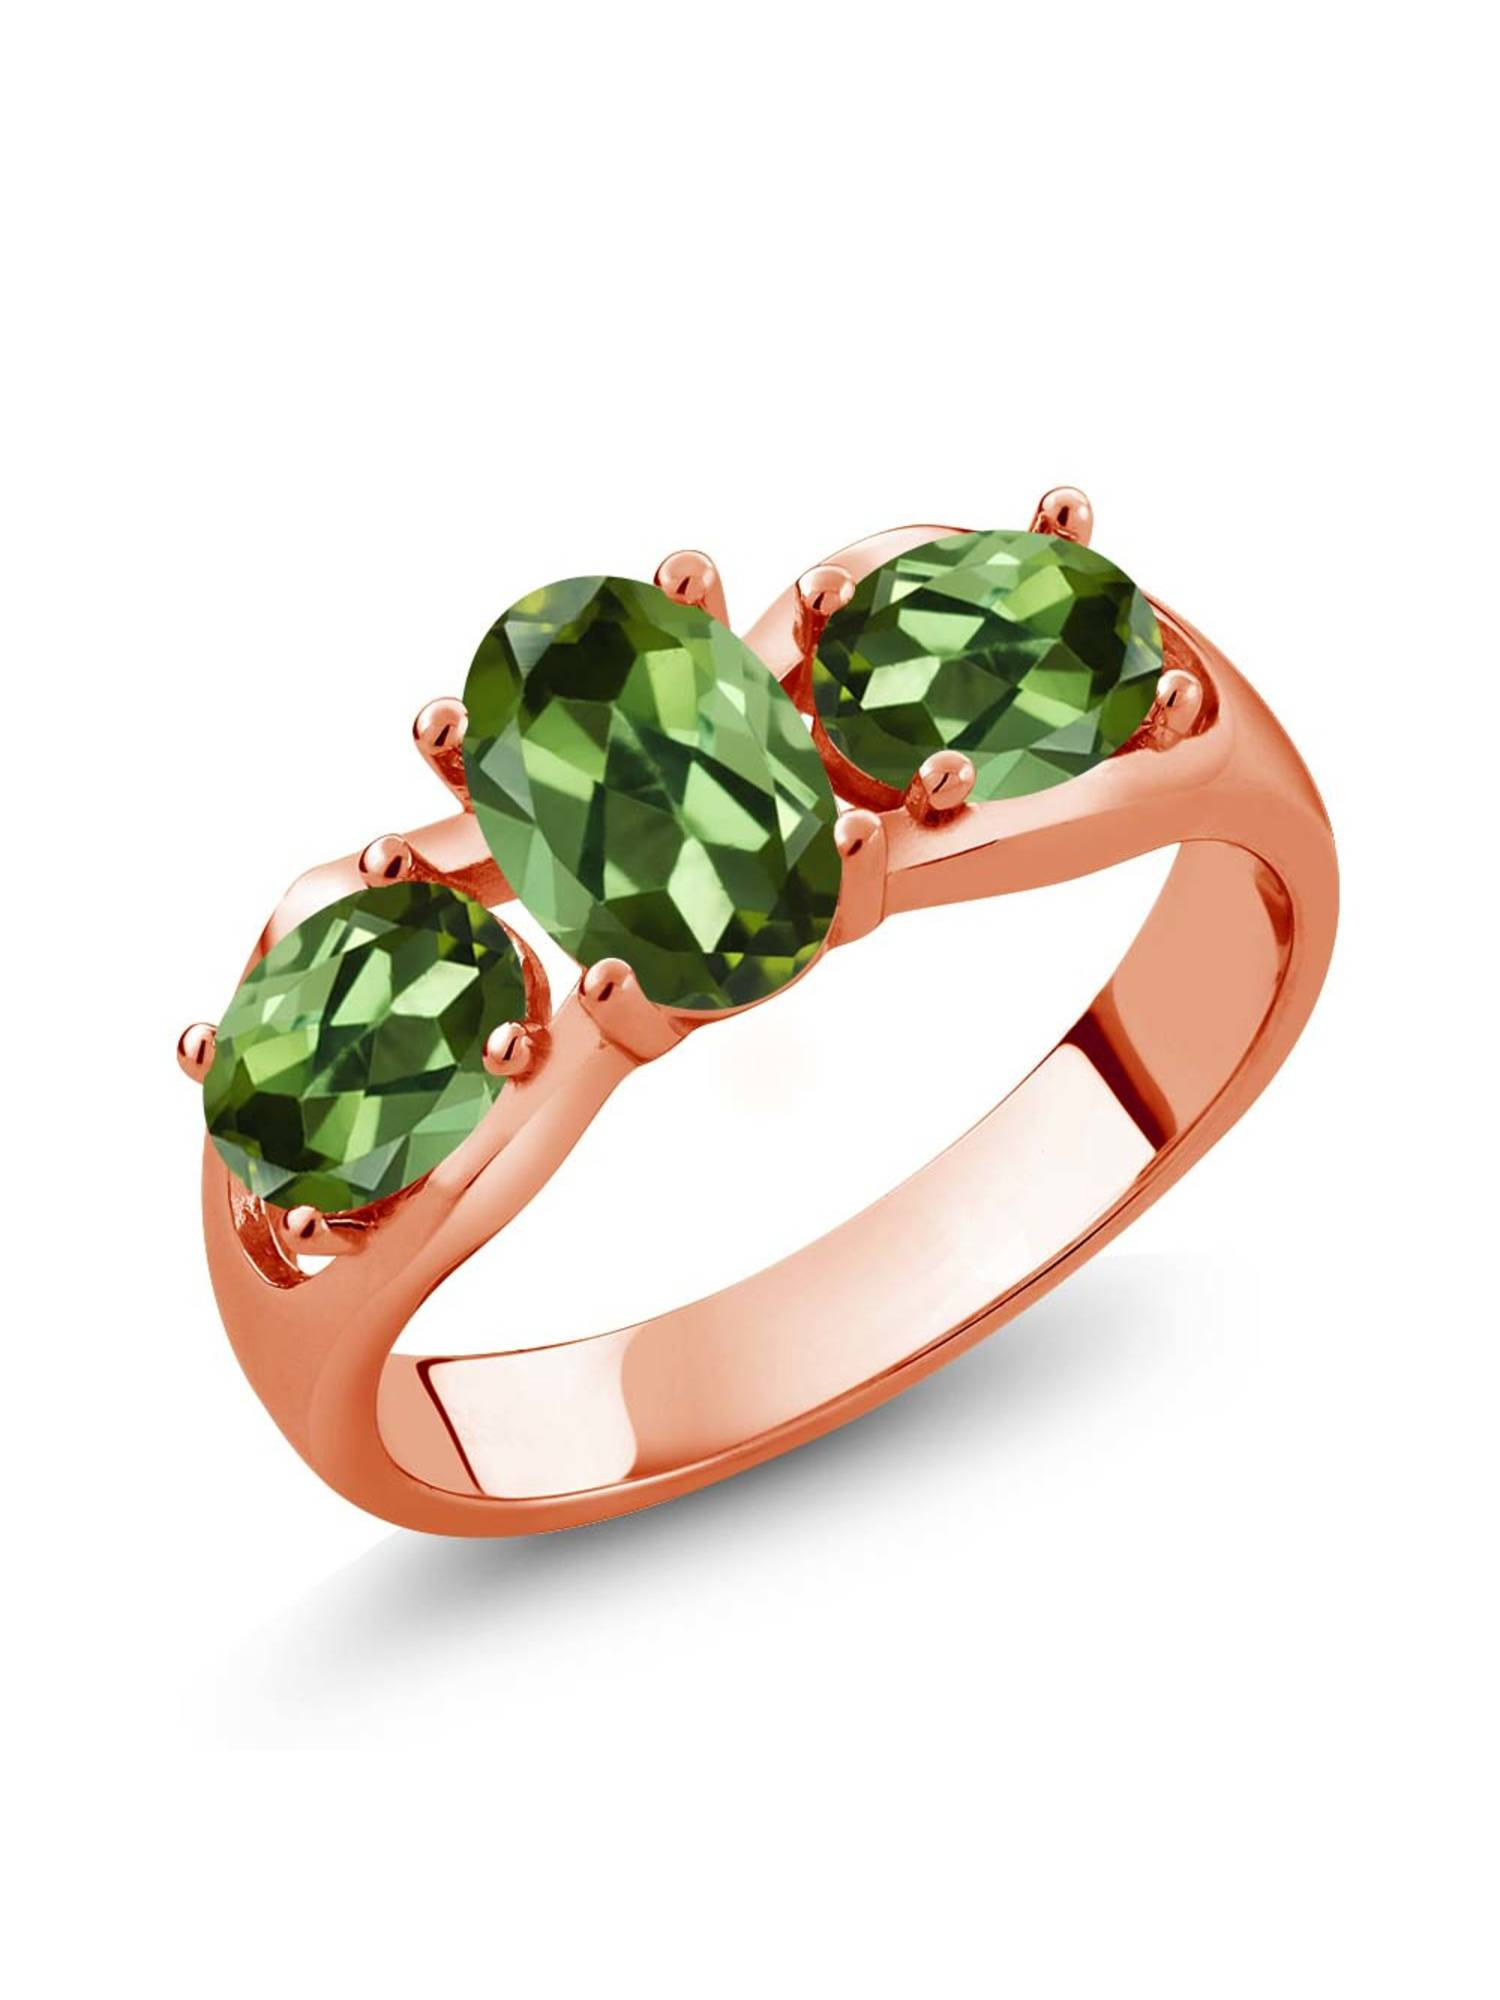 1.70 Ct Oval Green Tourmaline 18K Rose Gold Plated Silver Ring by